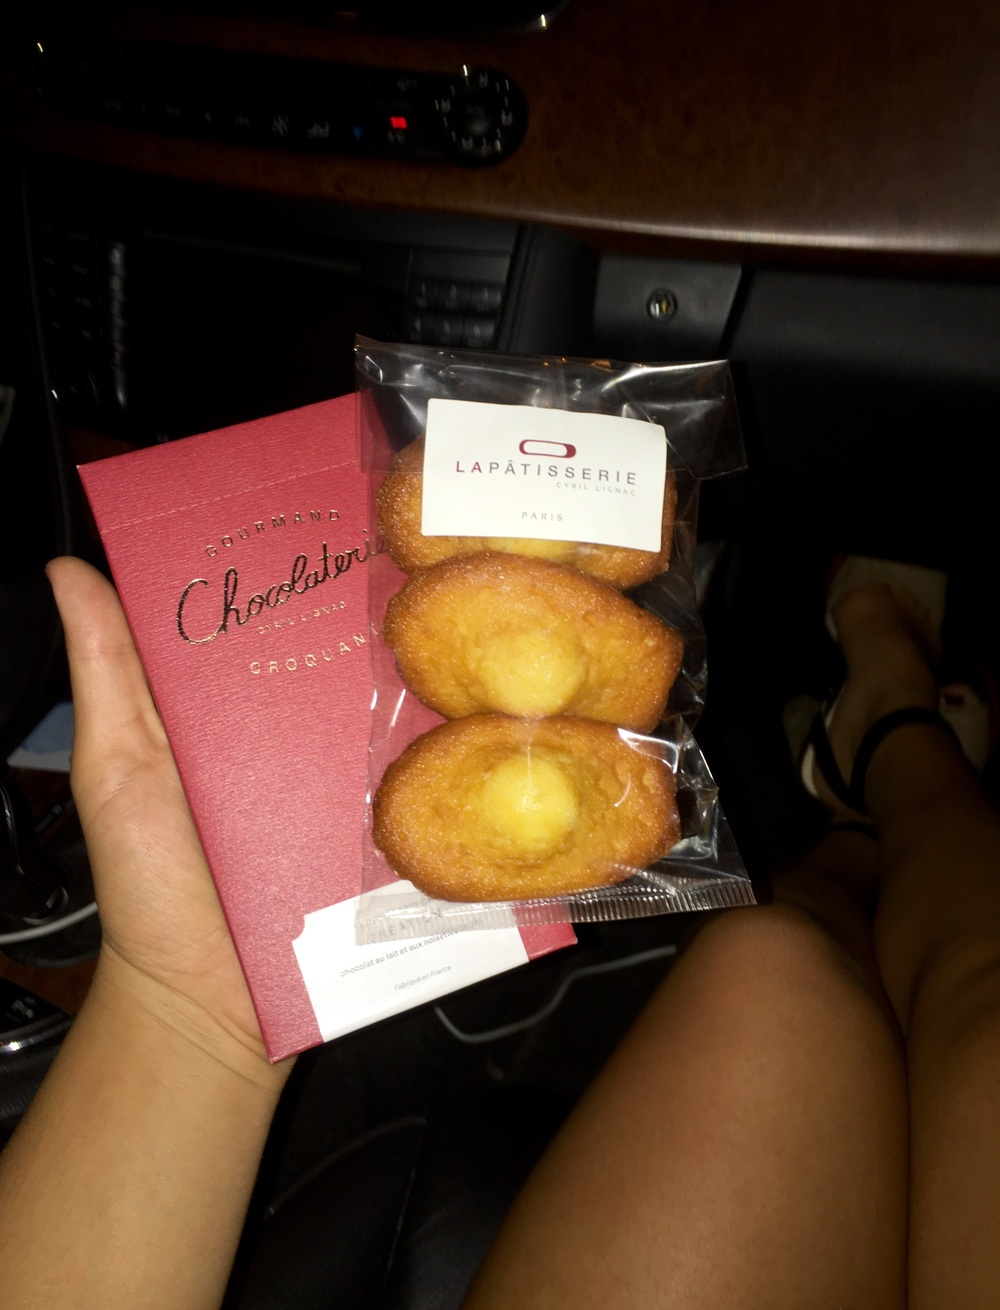 It contained a delish hazelnut milk chocolate and some Madeleine's! We were in a munchie mode so we ate it all in the car before hitting the club...